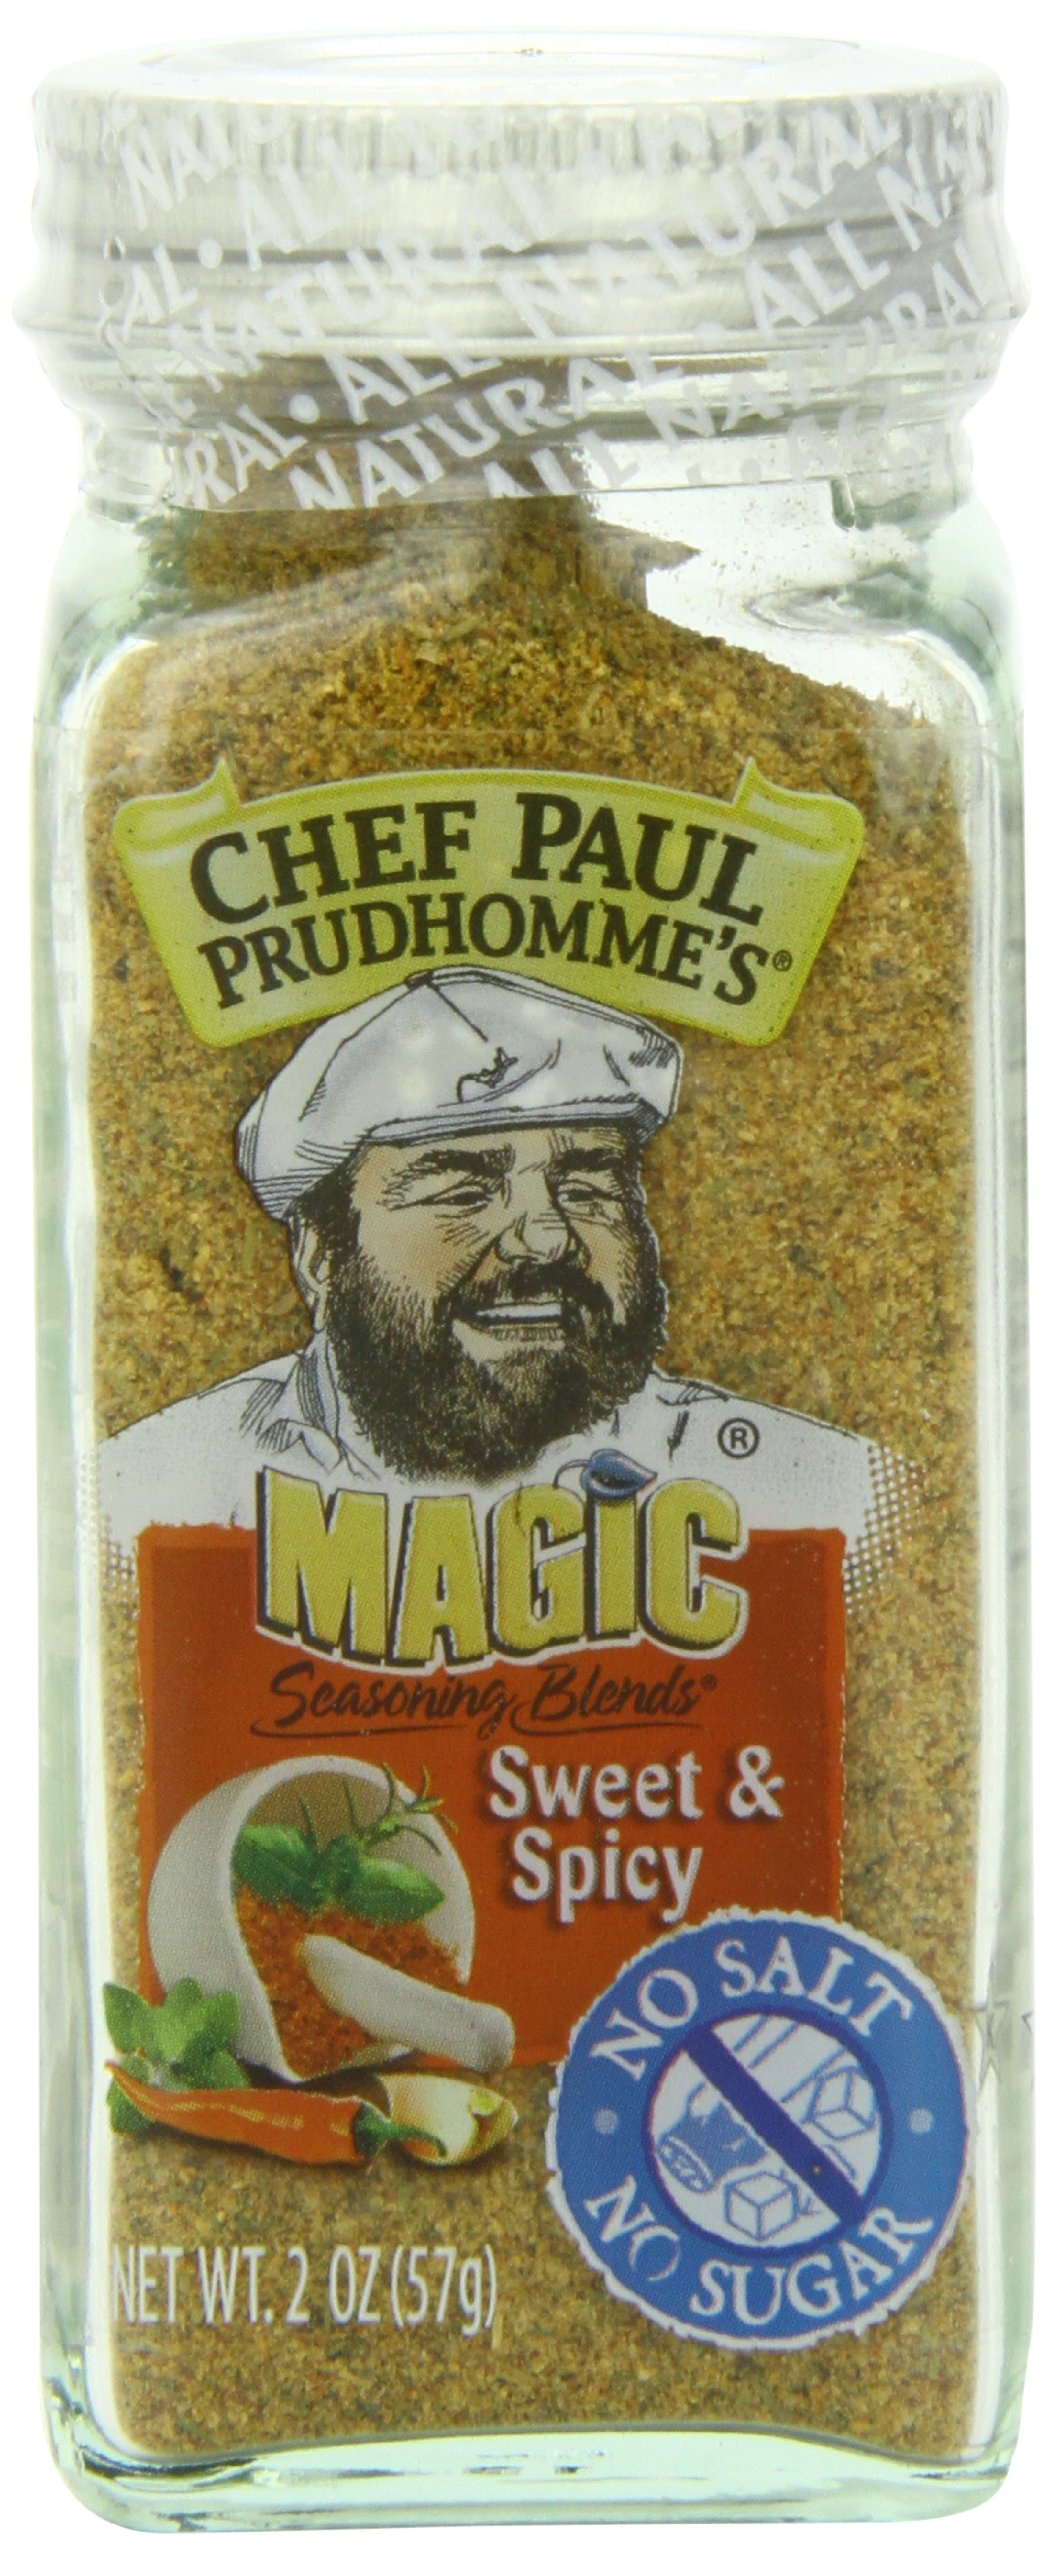 Chef Paul Prudhomme's Magic Seasoning Blends No Salt & No Sugar, Sweet and Spicy, 2-Ounce